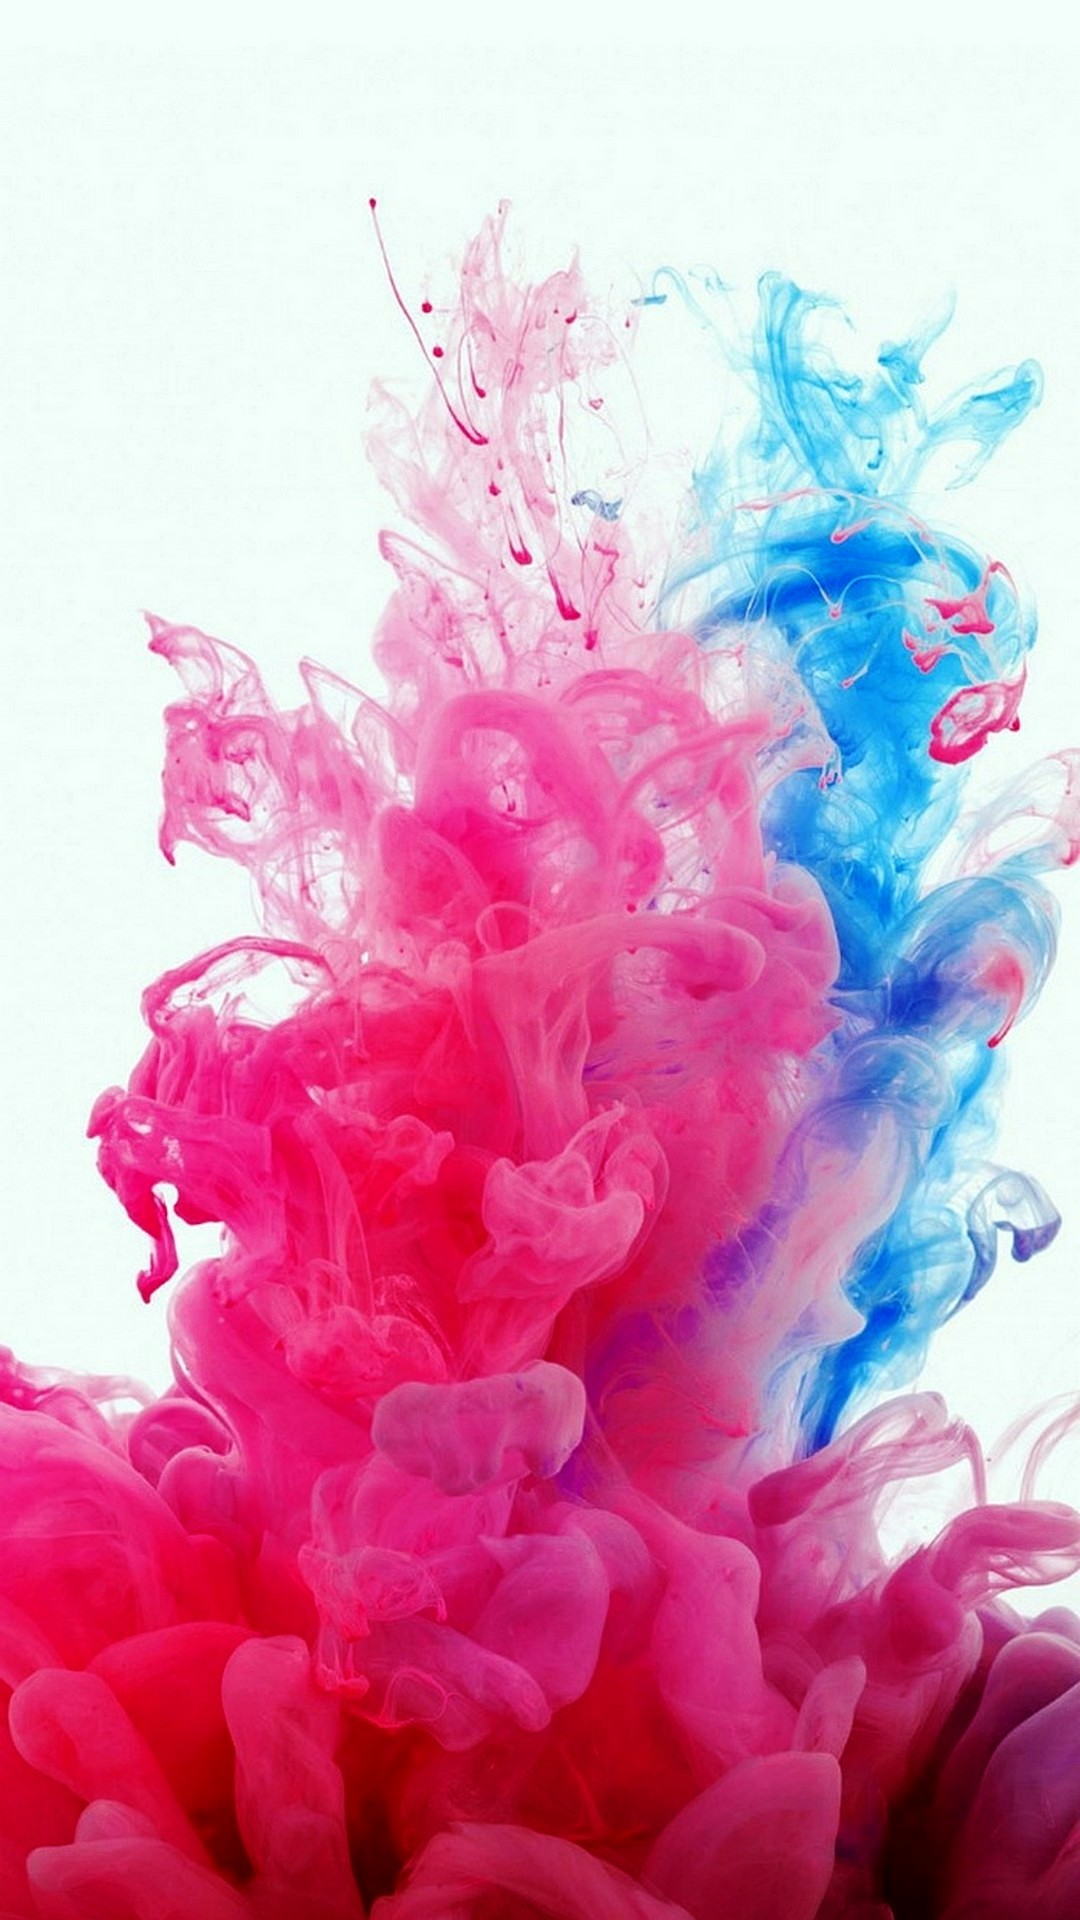 Liquid Images Iphone 7 Wallpaper Hd With High-resolution - Colorful Wallpaper For Iphone 7 Plus - HD Wallpaper